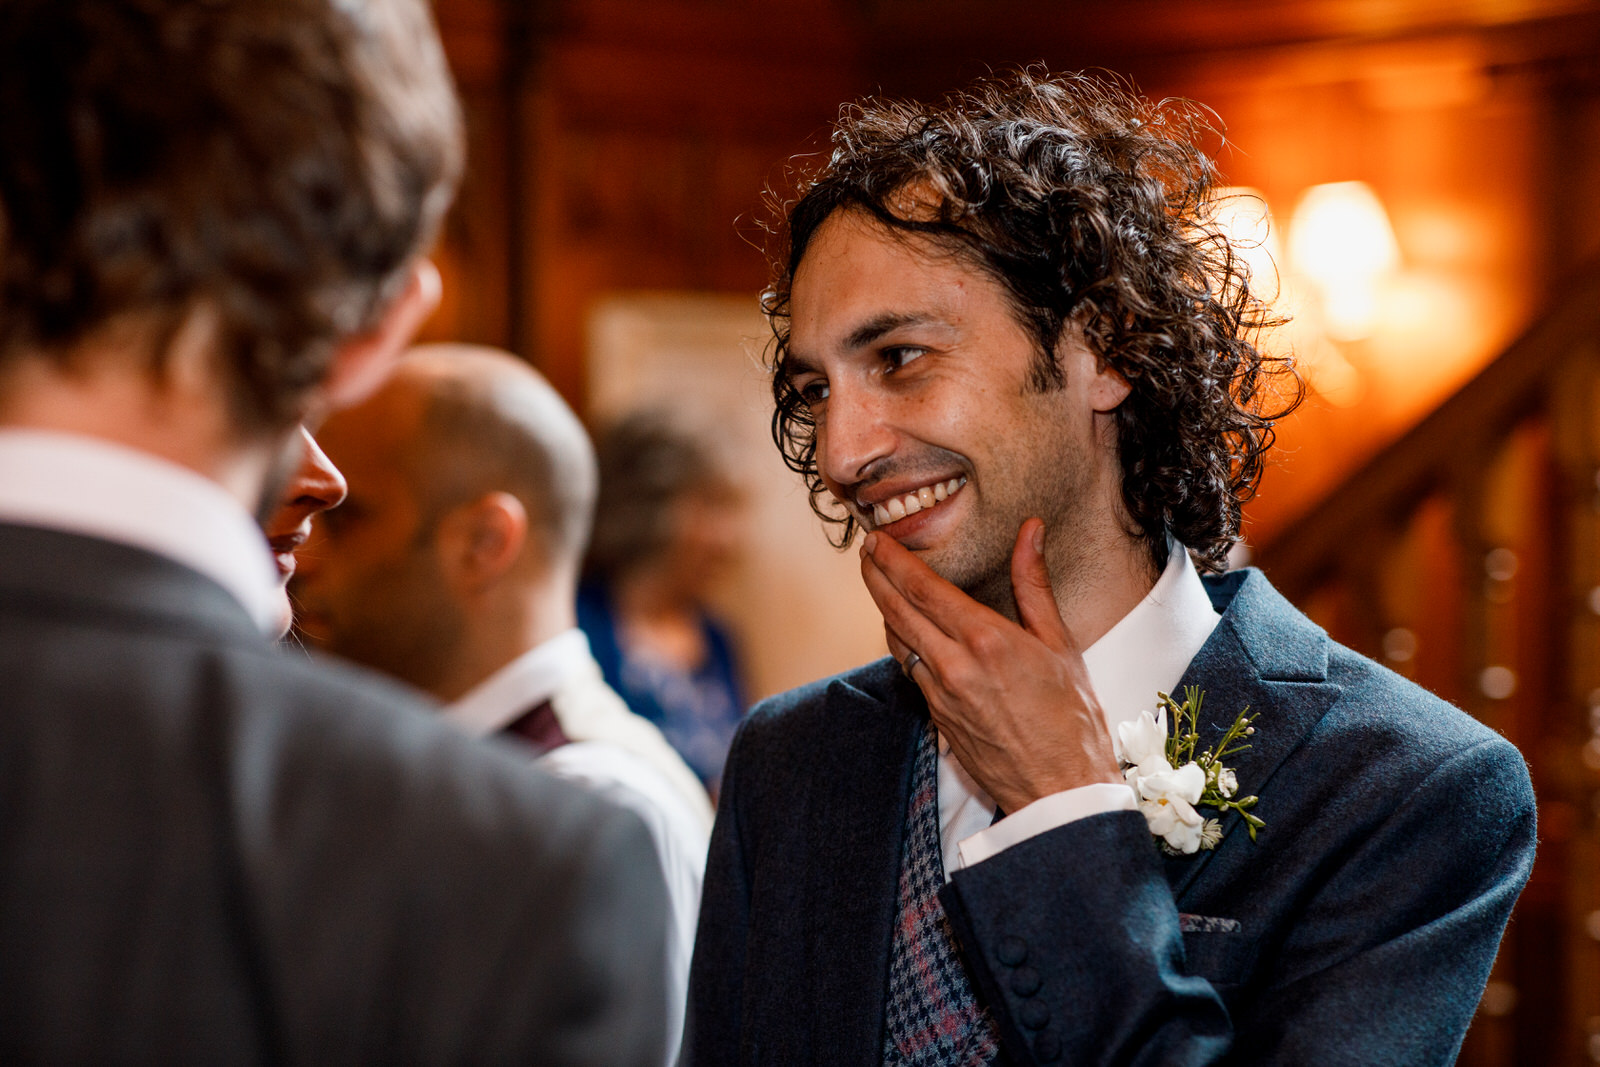 groom at ashdown hotel wedding